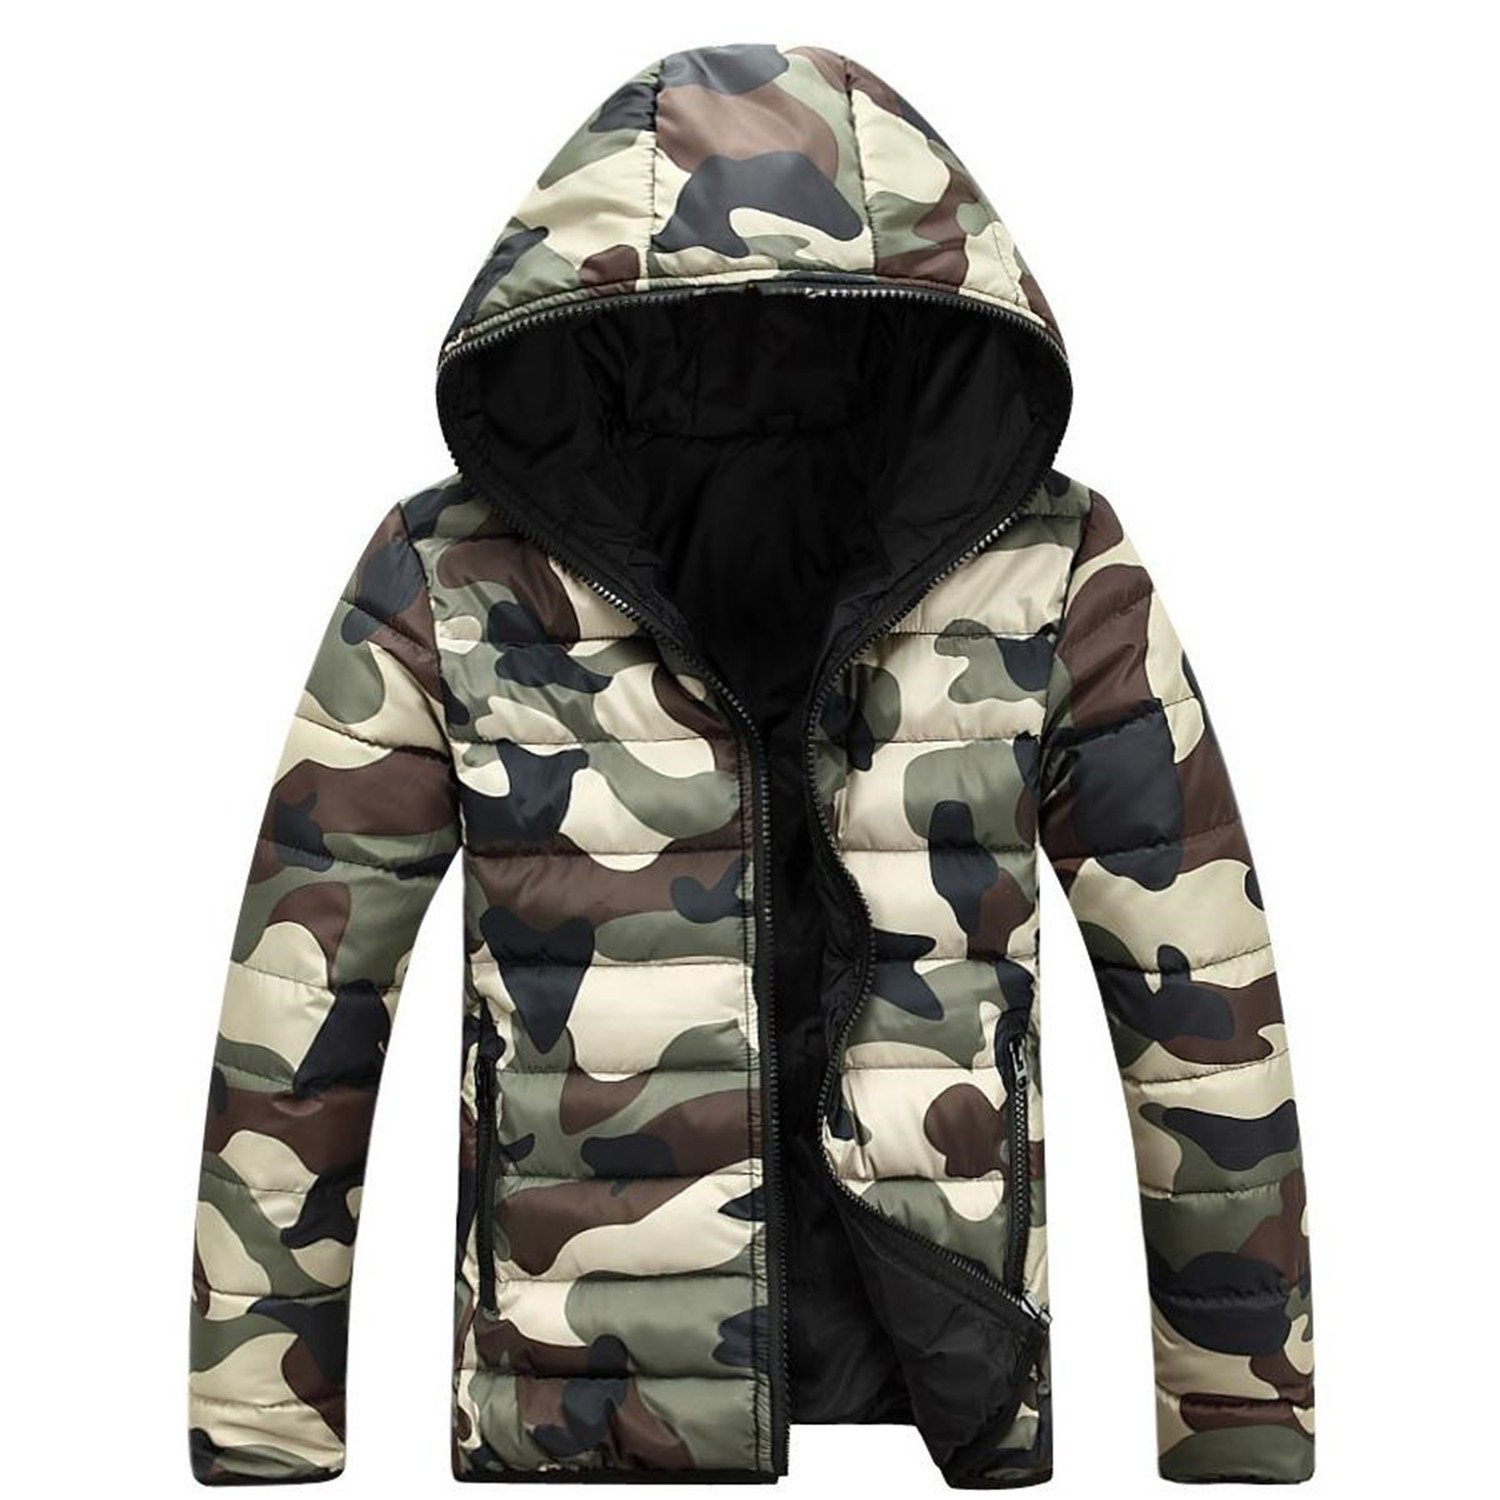 Amazon.com: 2019 Warm Style Winter Jacket Men Camouflage ...